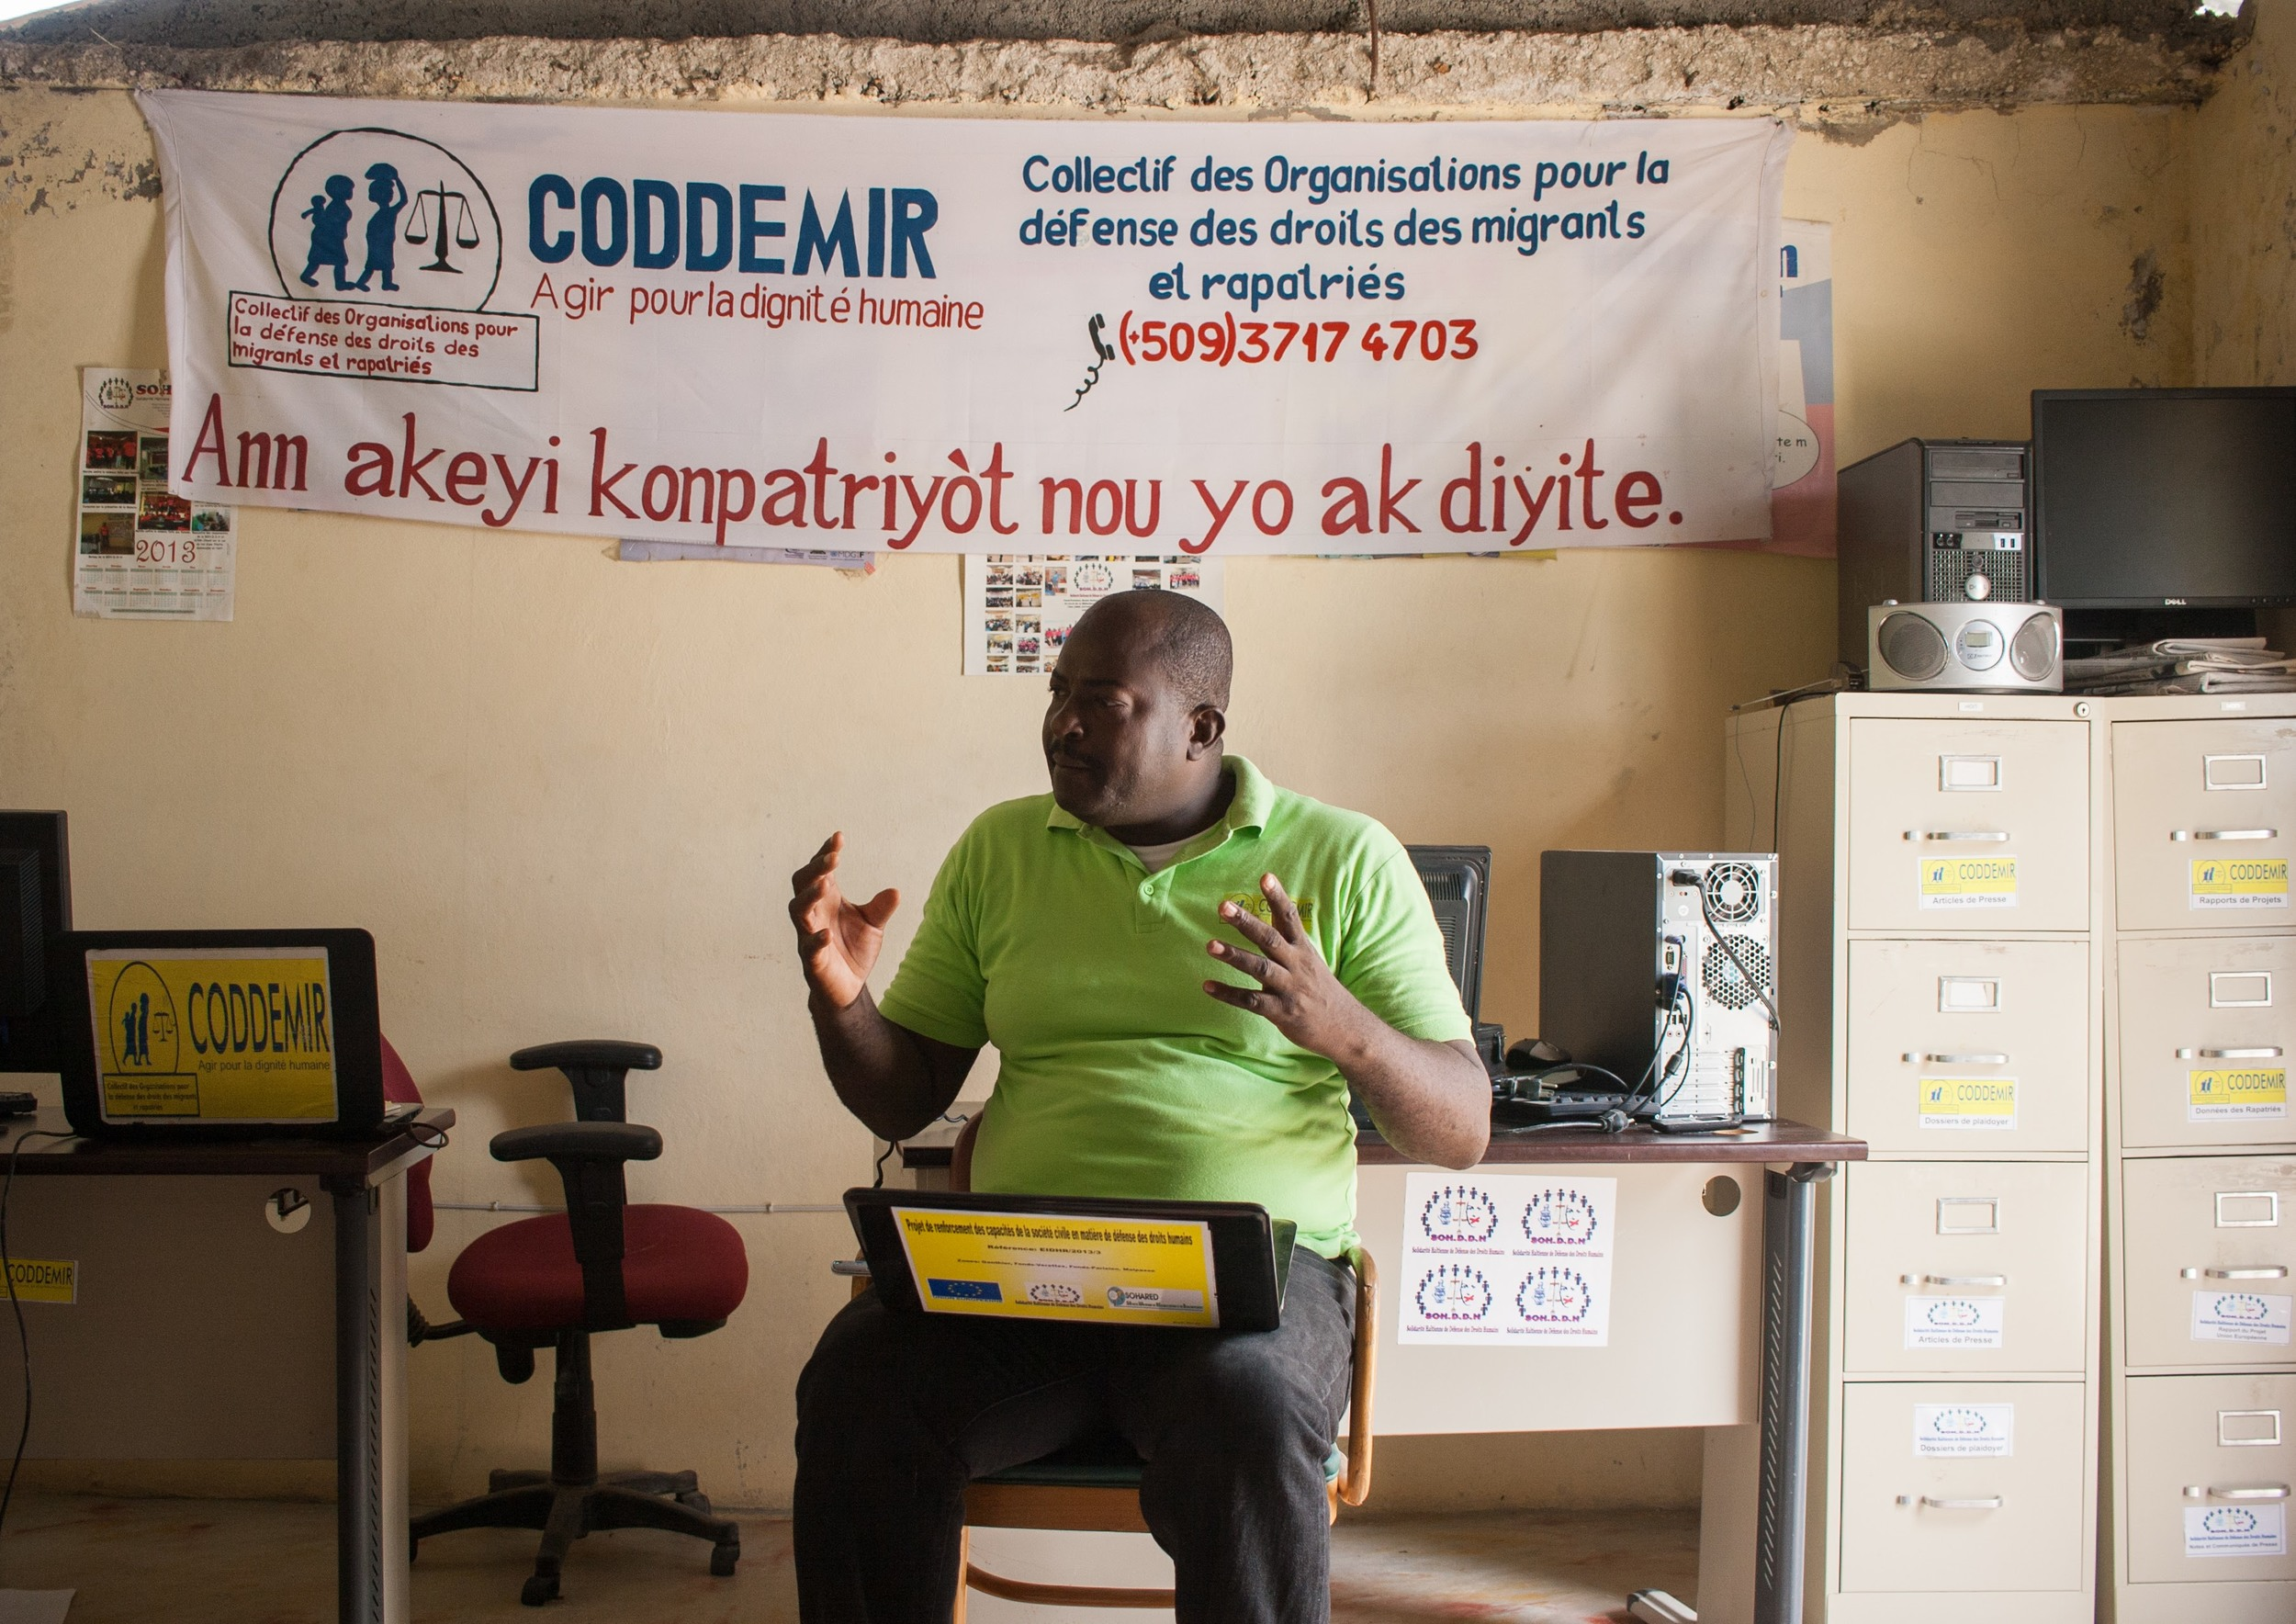 """""""When one person's human rights are violated, everyone's rights are violated"""" -Pierre Garot Nere, Coordinator of CODDEMIR, at CODDEMIR's offices in Malpasse, Haiti. Anna Vogt."""